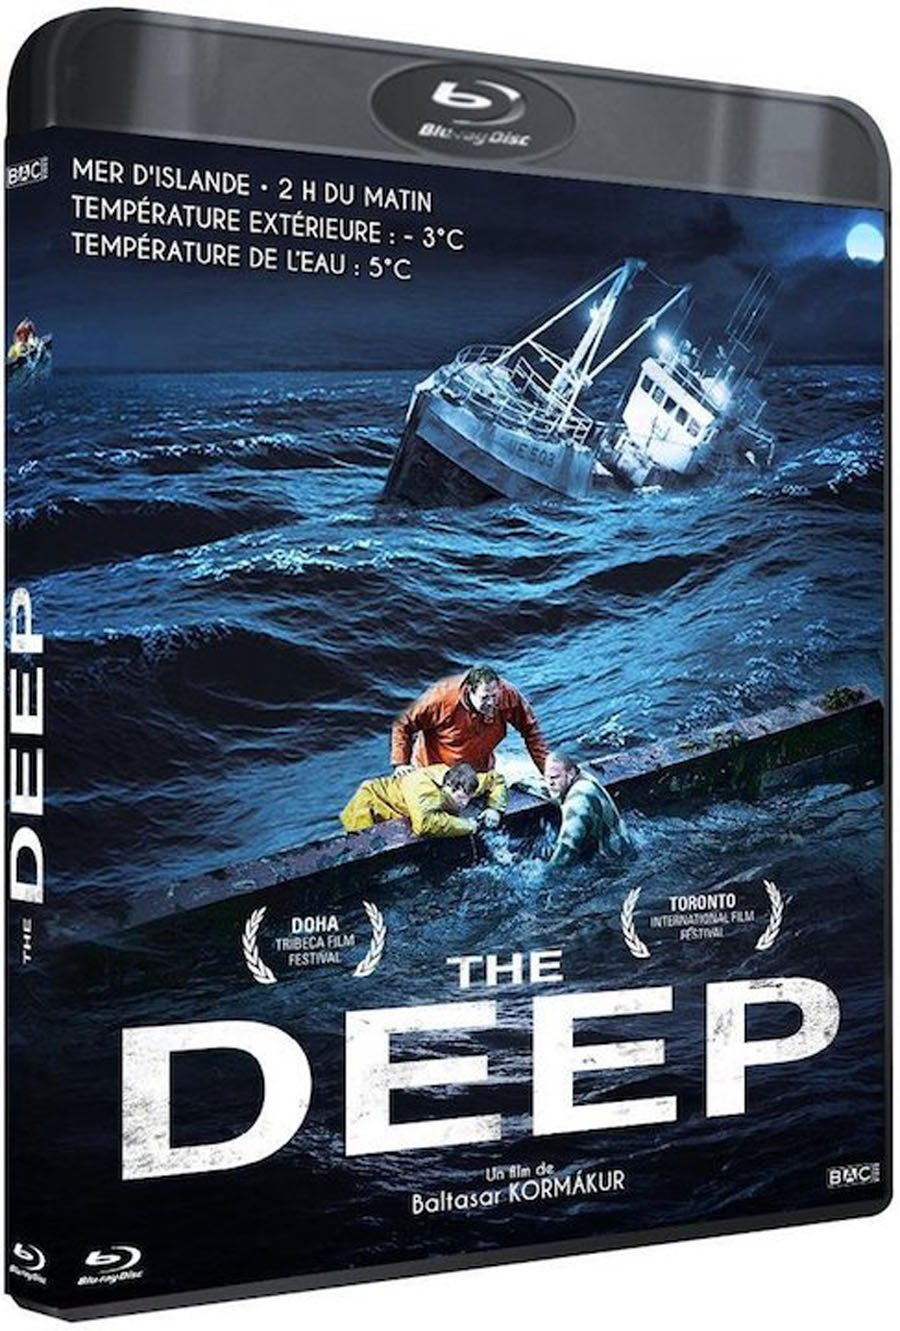 THE DEEP - SURVIVRE